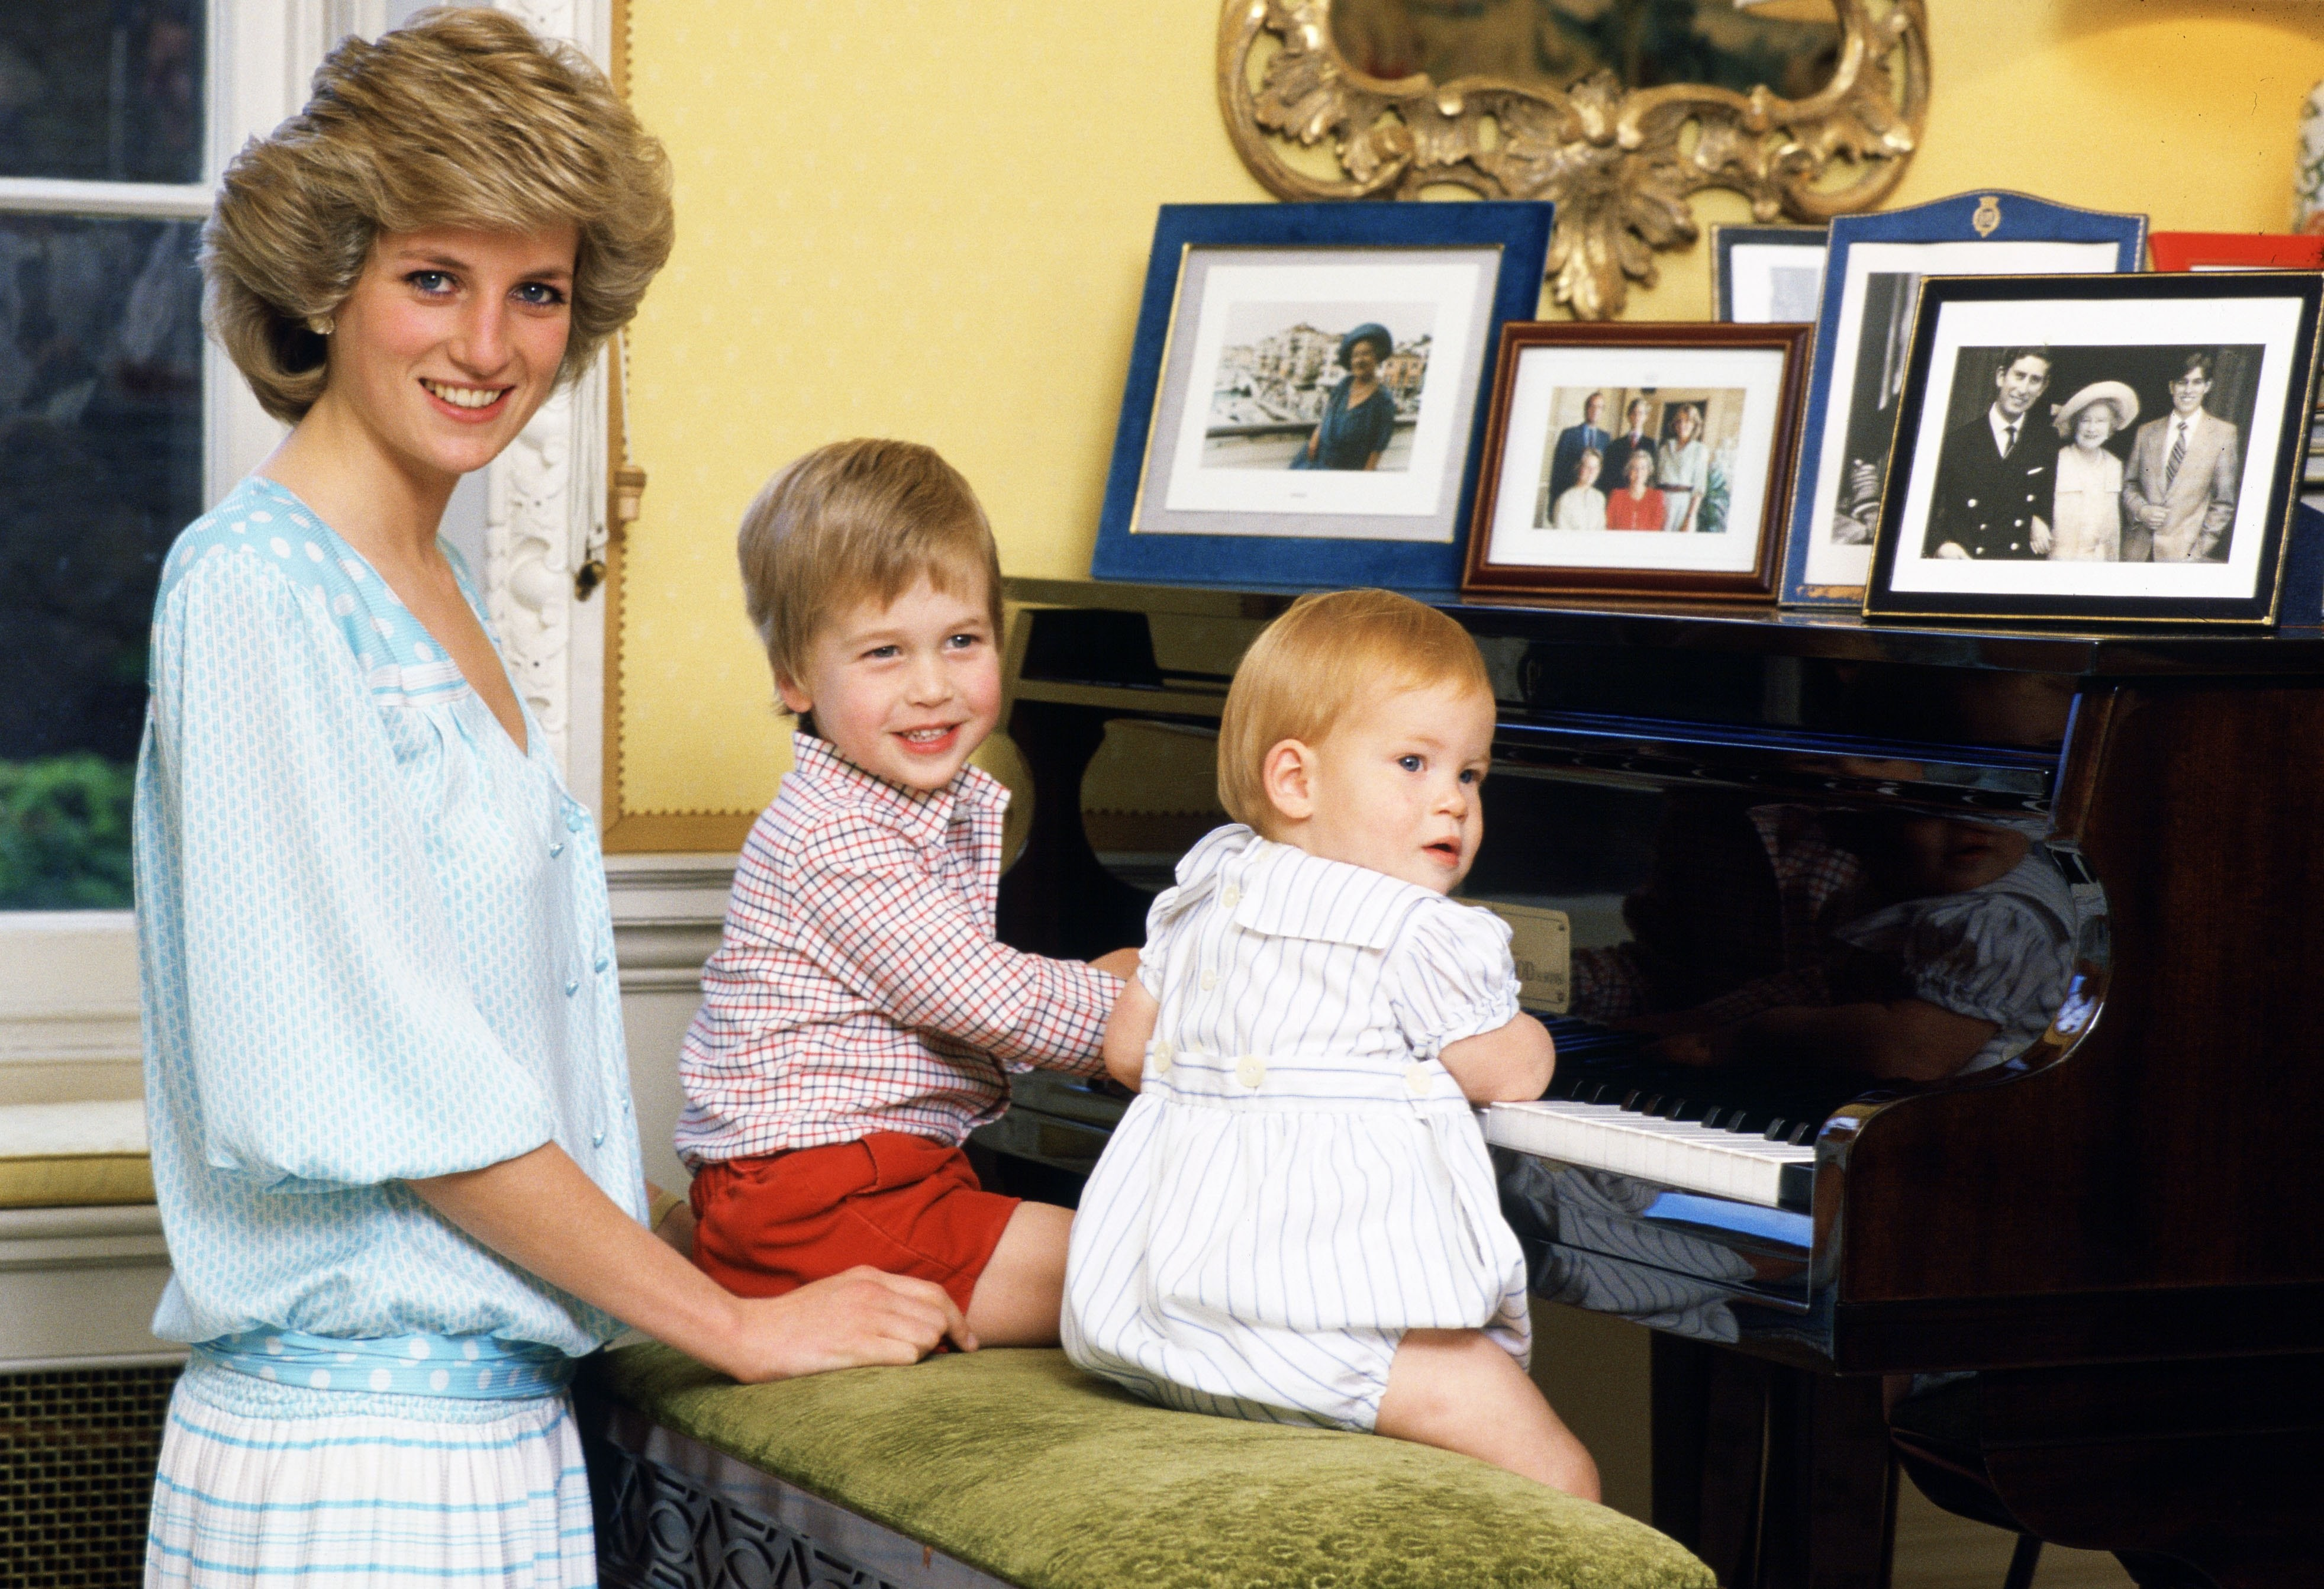 Princess Diana with Prince William and Prince Harry. Although this photo was taken in the 1980s, the outfits could have easily been worn during any era.